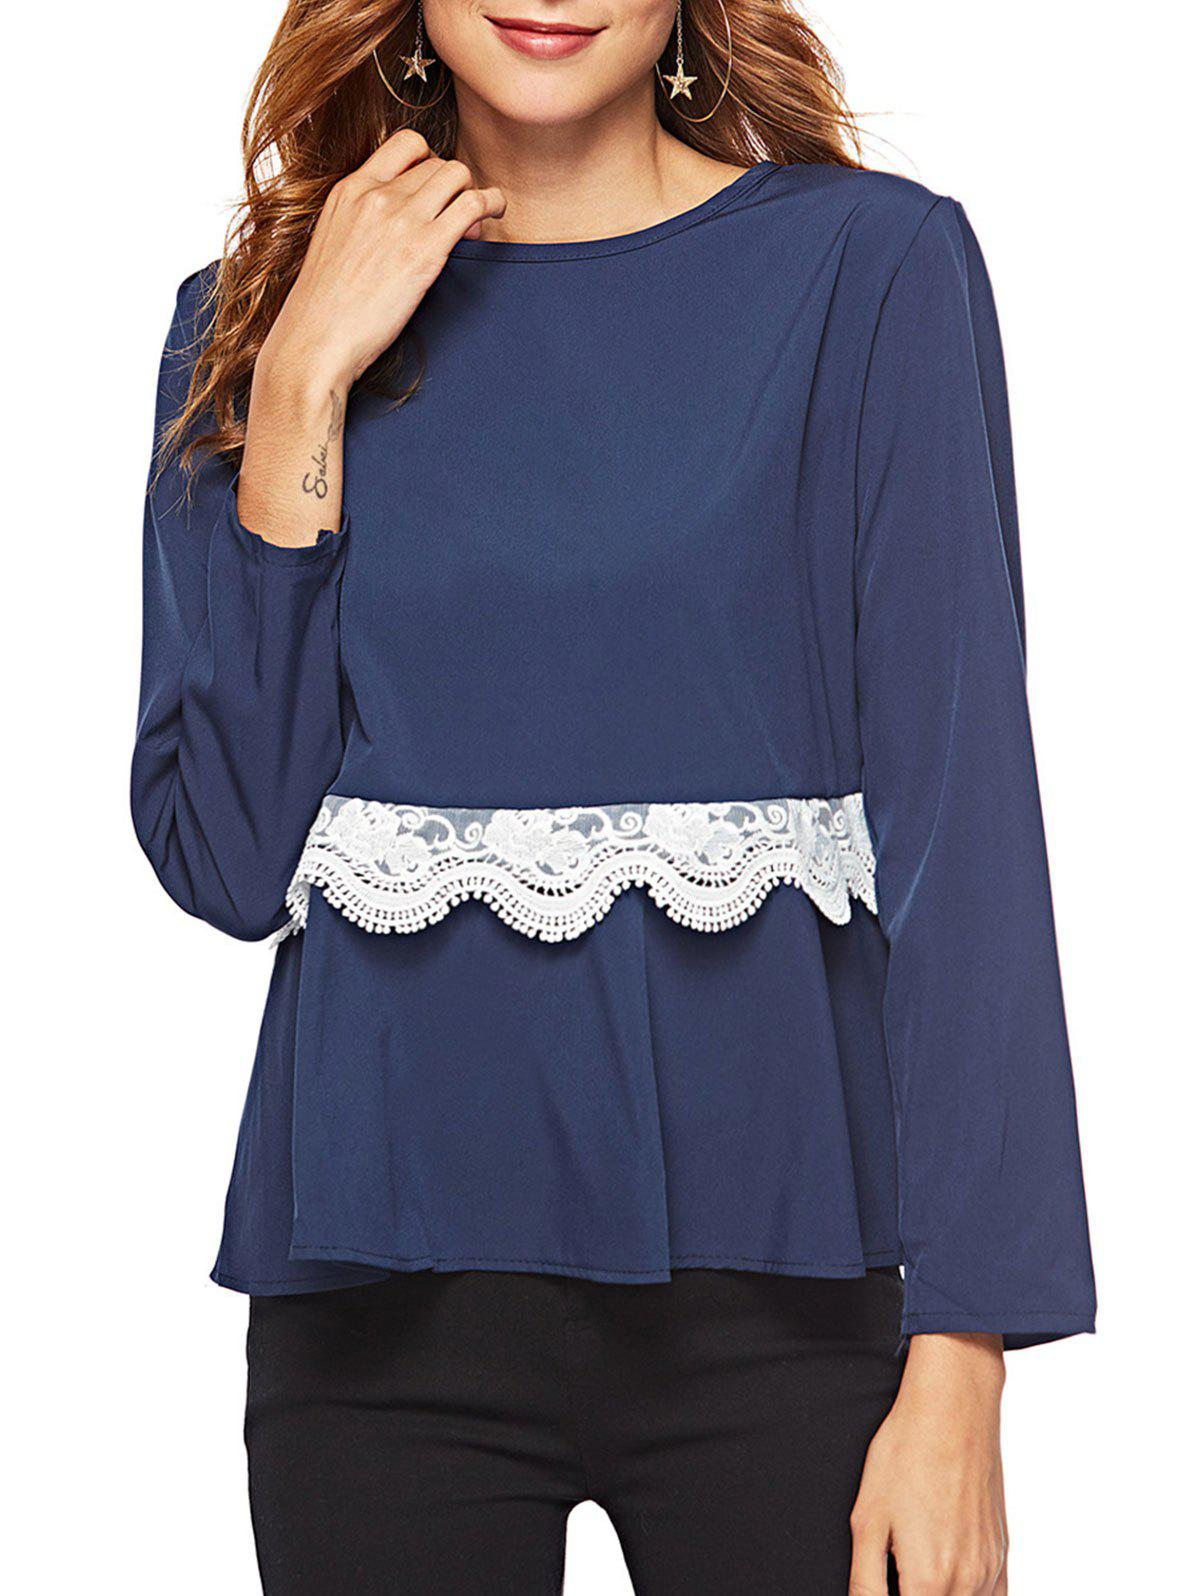 Shops Lace Panel Peplum Top